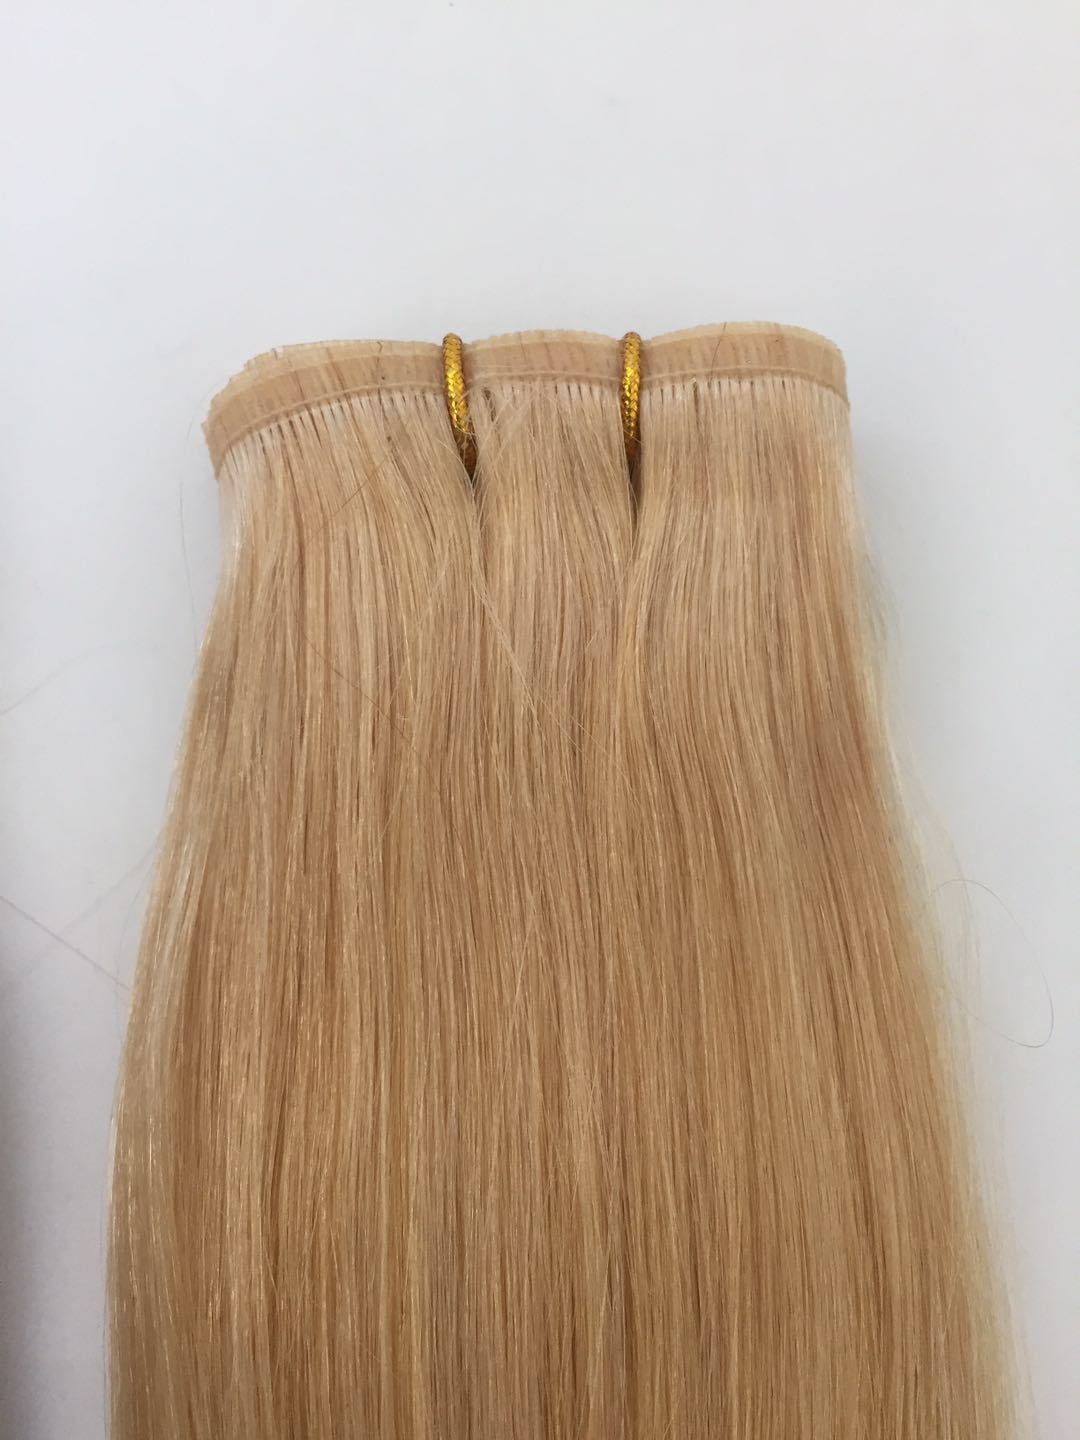 100% natural cuticle aligned virgin hair seamless remy human hair extensions in China QM193